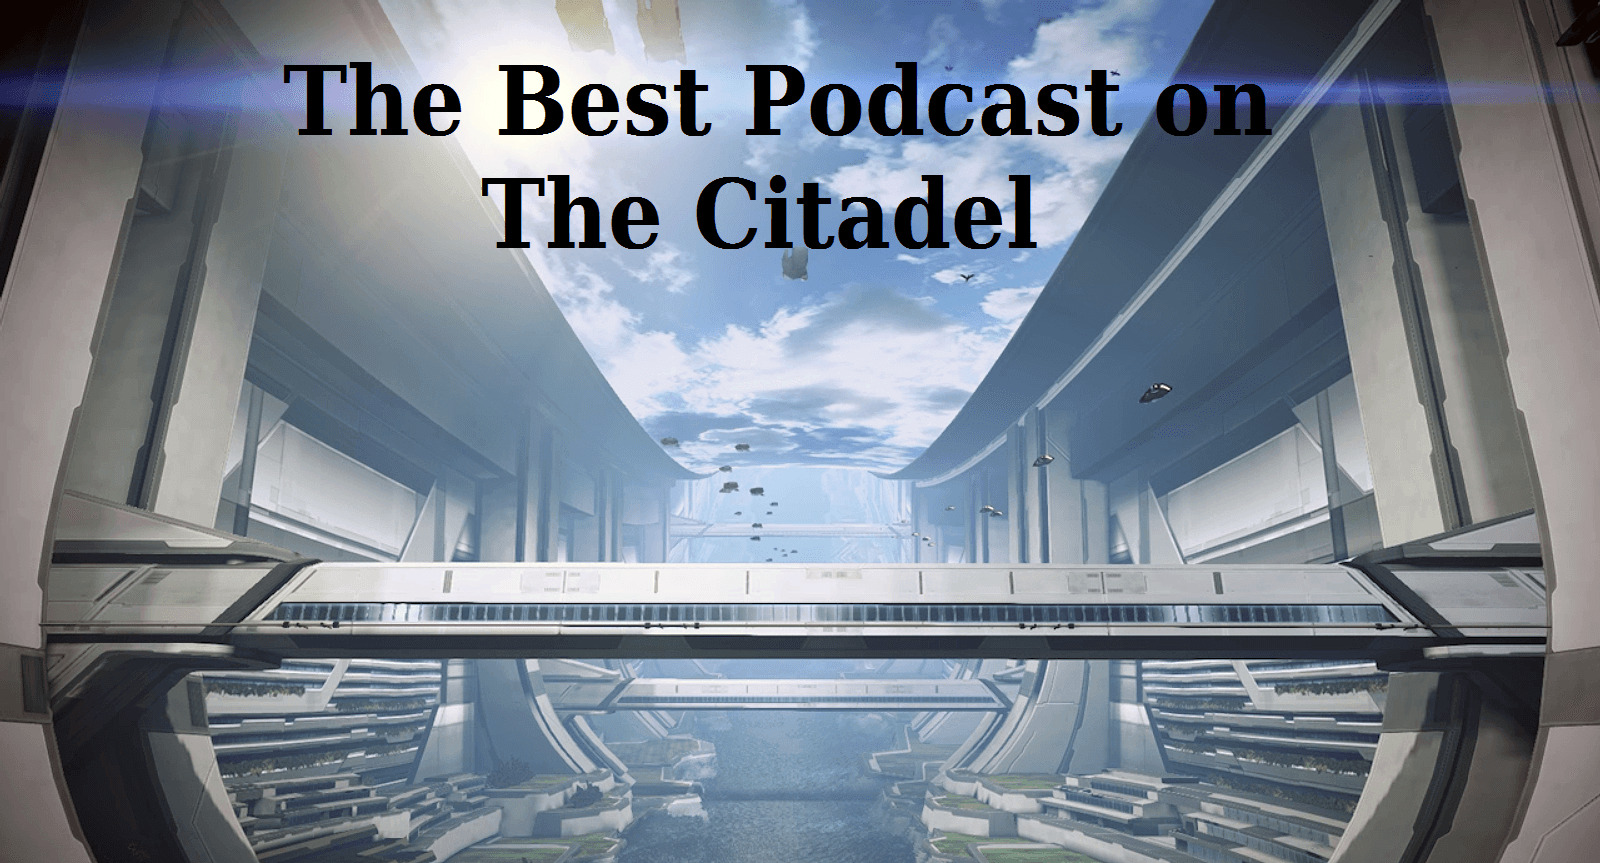 The Best Podcast on the Citadel, Episode 24